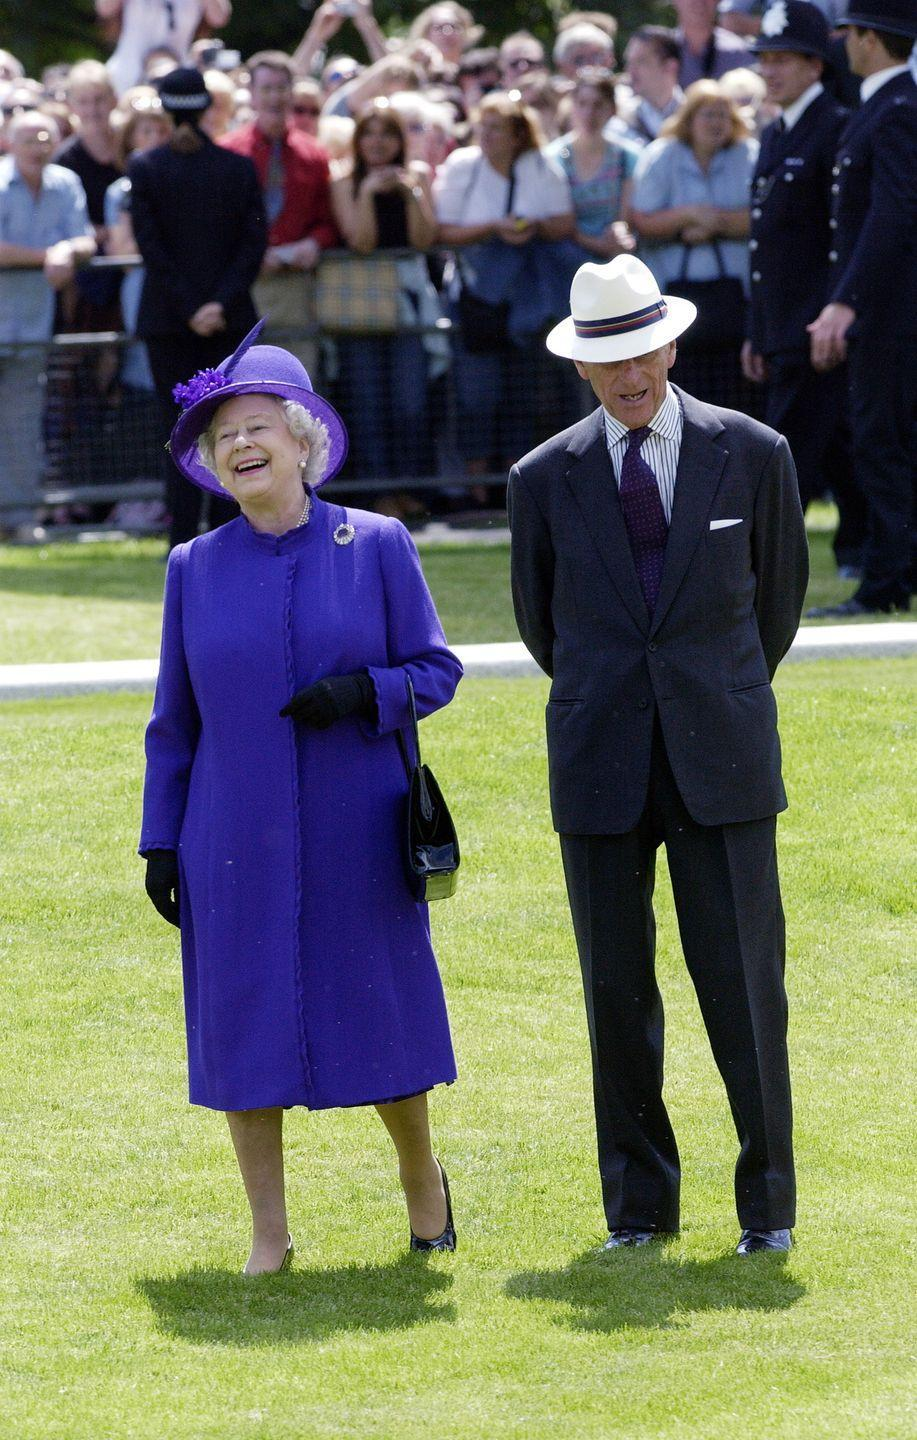 <p>The Queen laughs as she walks with Prince Philip in his Panama sunhat after opening the fountain built in memory of Diana, Princess of Wales, in London's Hyde Park.</p>